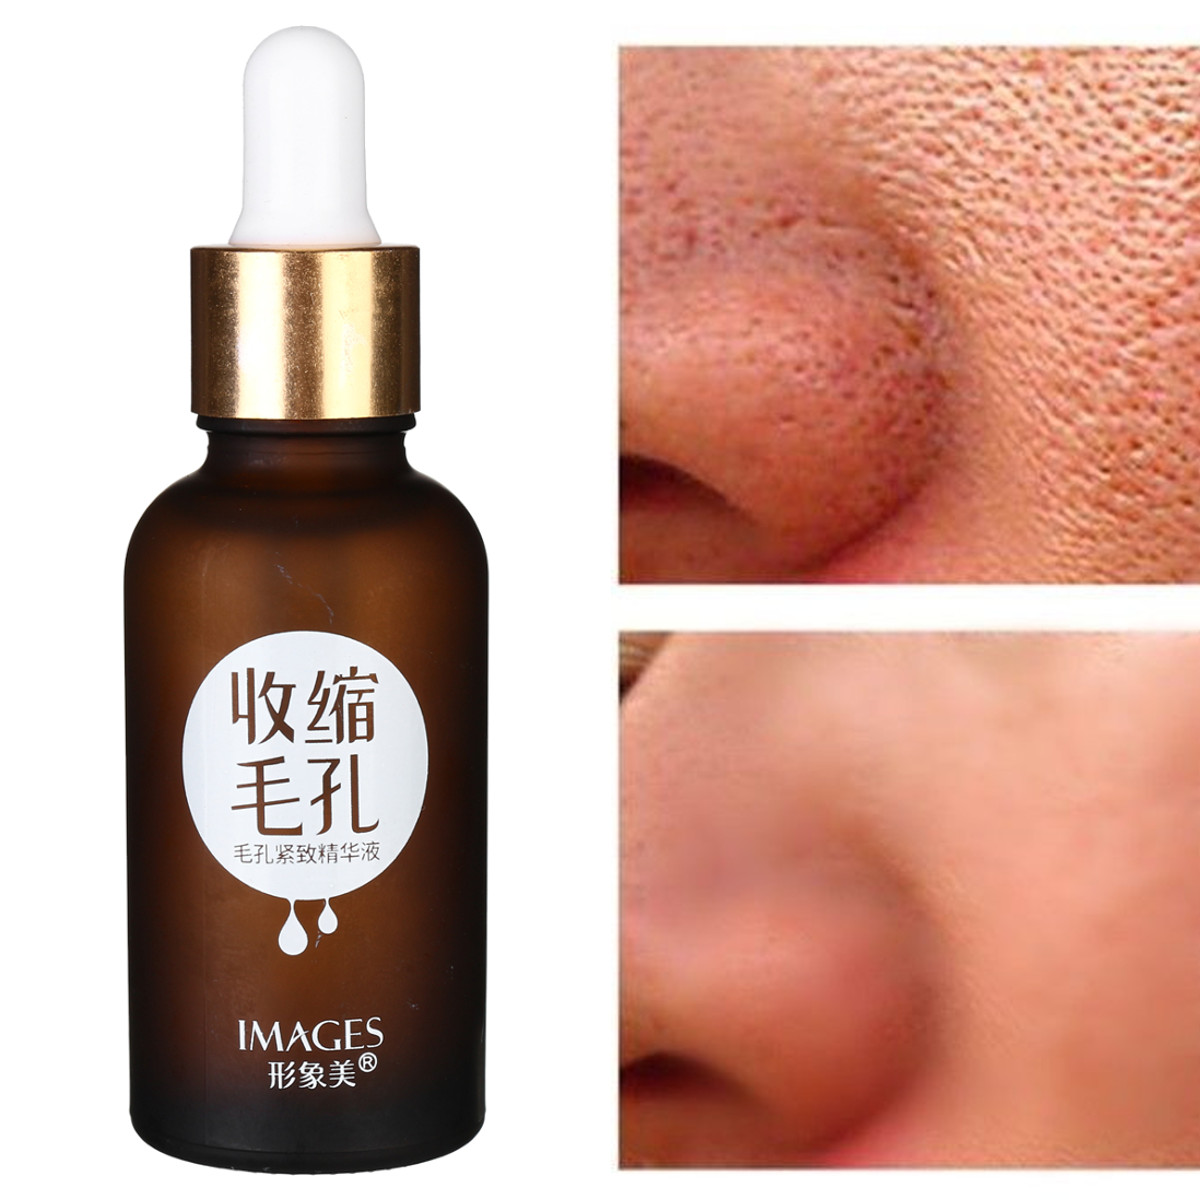 100% Pure Firming Hyaluronic Acid Serum Essences Anti-Aging Wrin